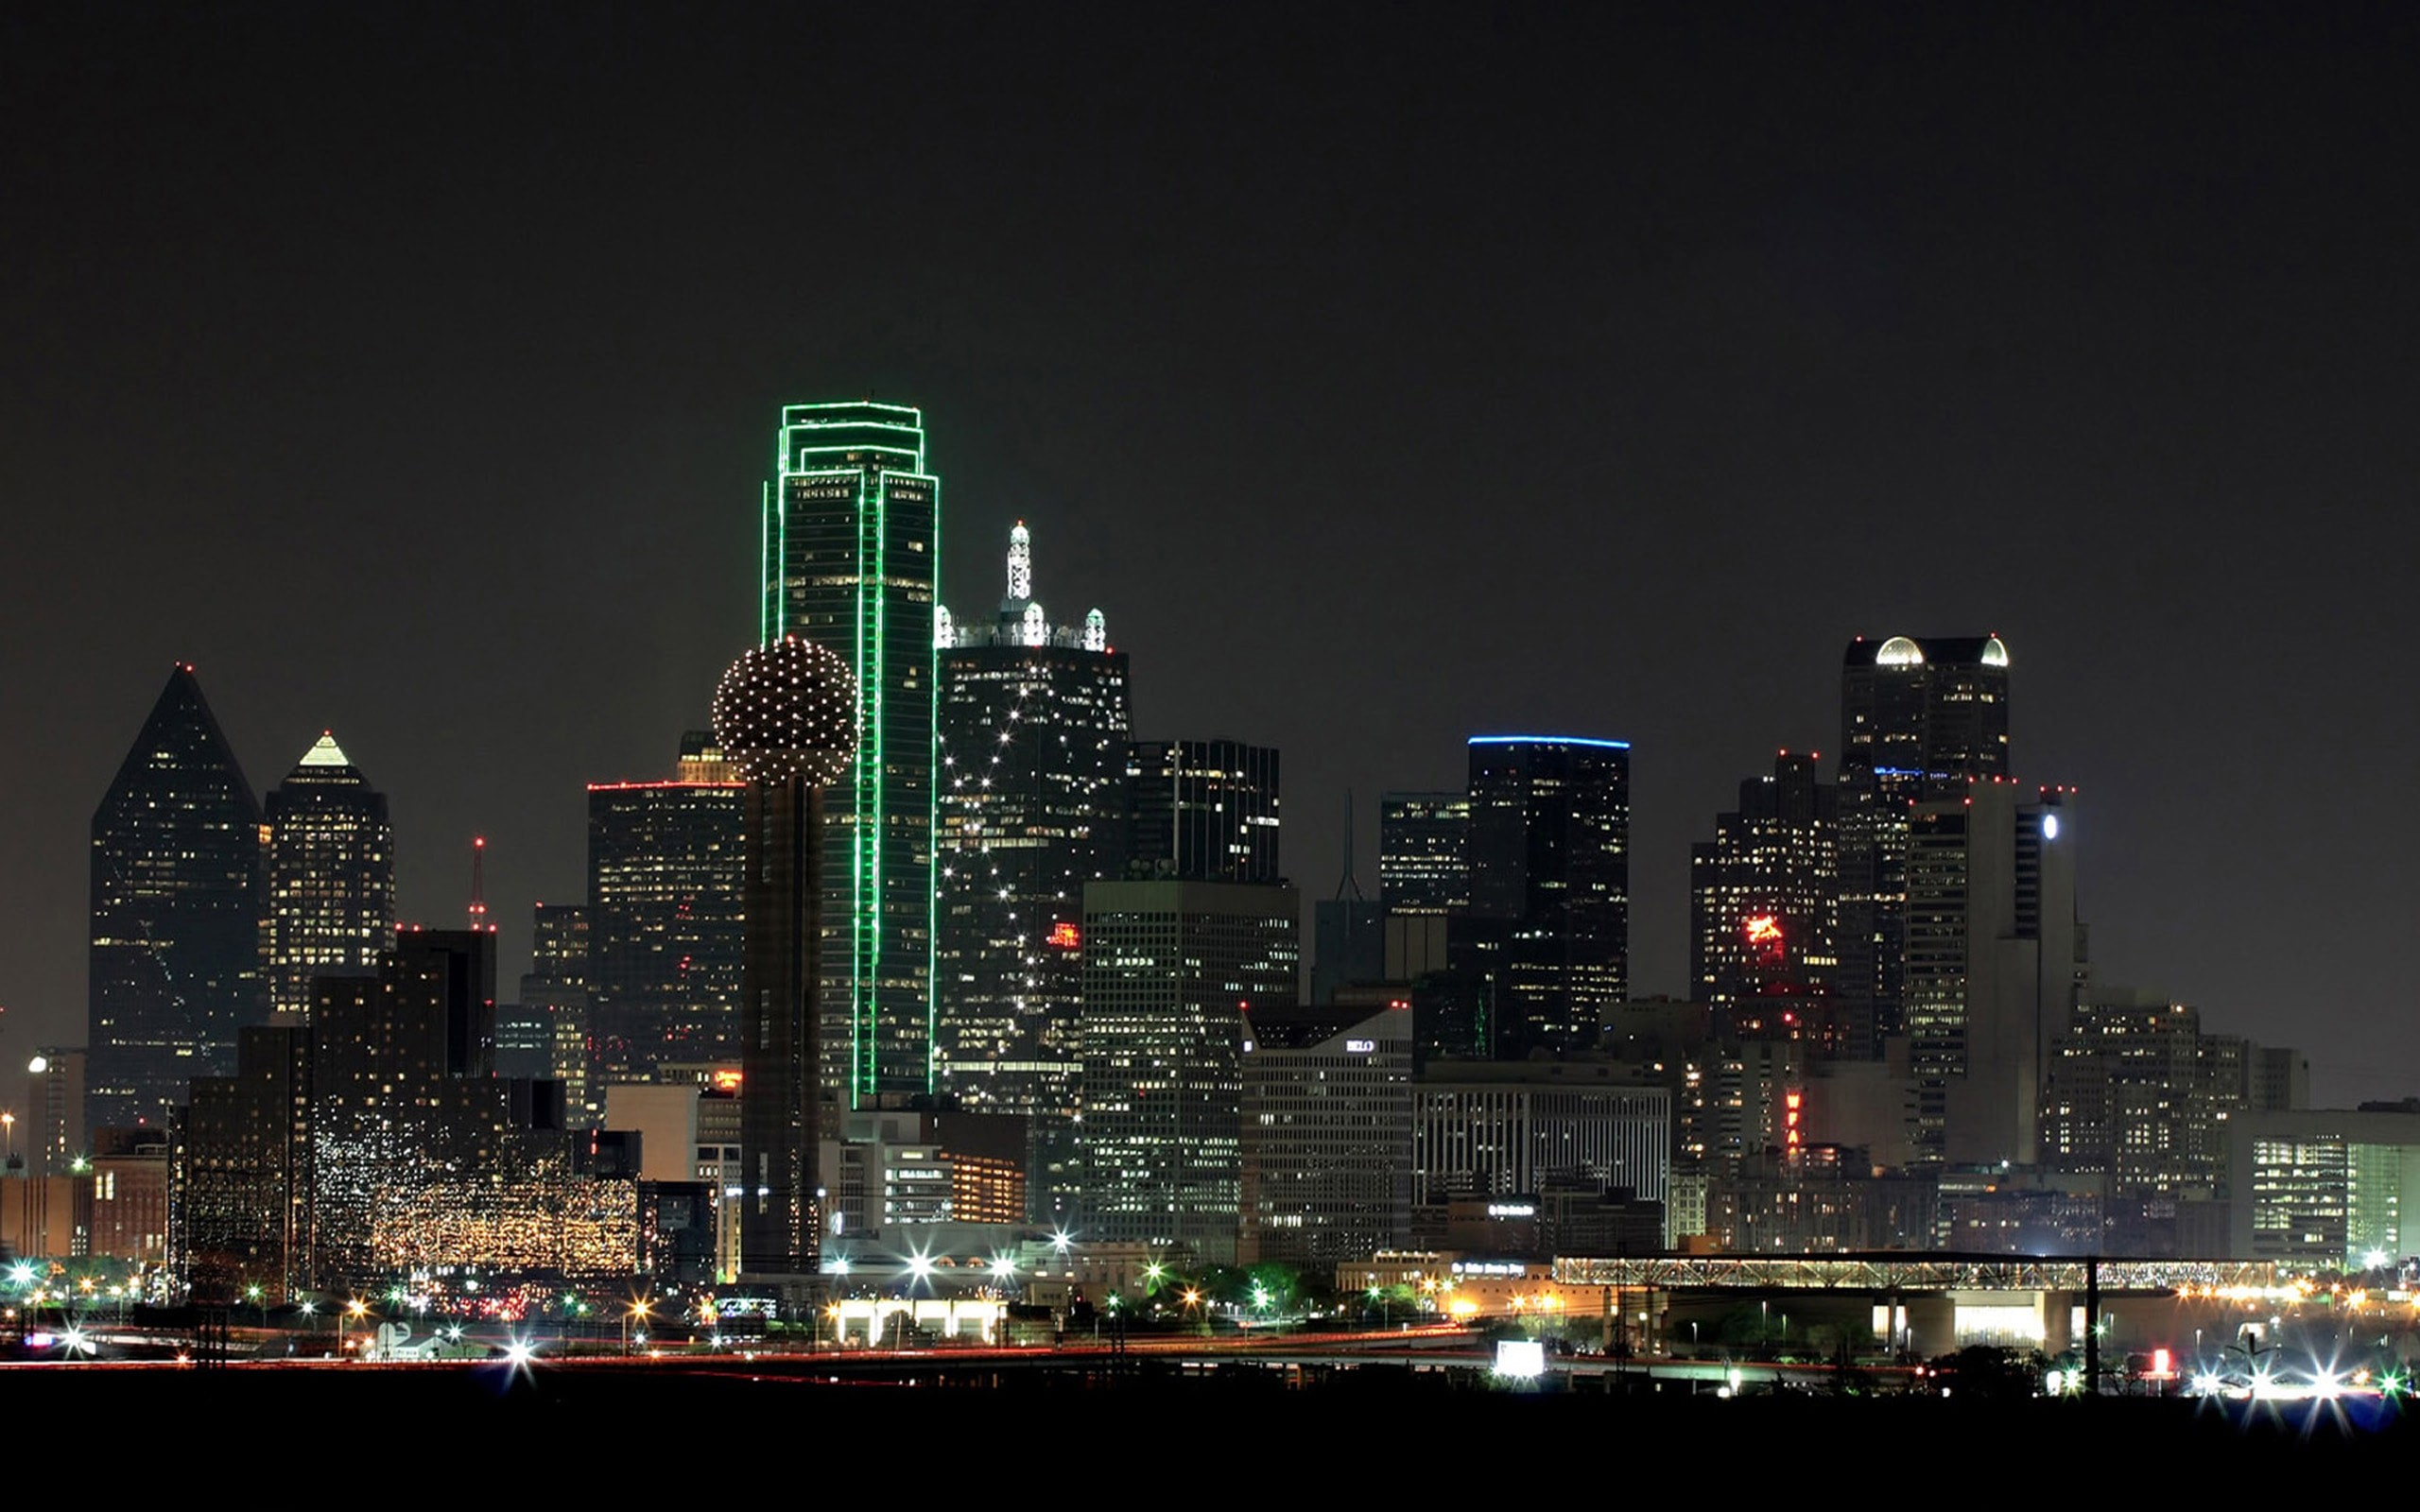 2560x1600 Dallas Wallpapers Dallas widescreen wallpapers